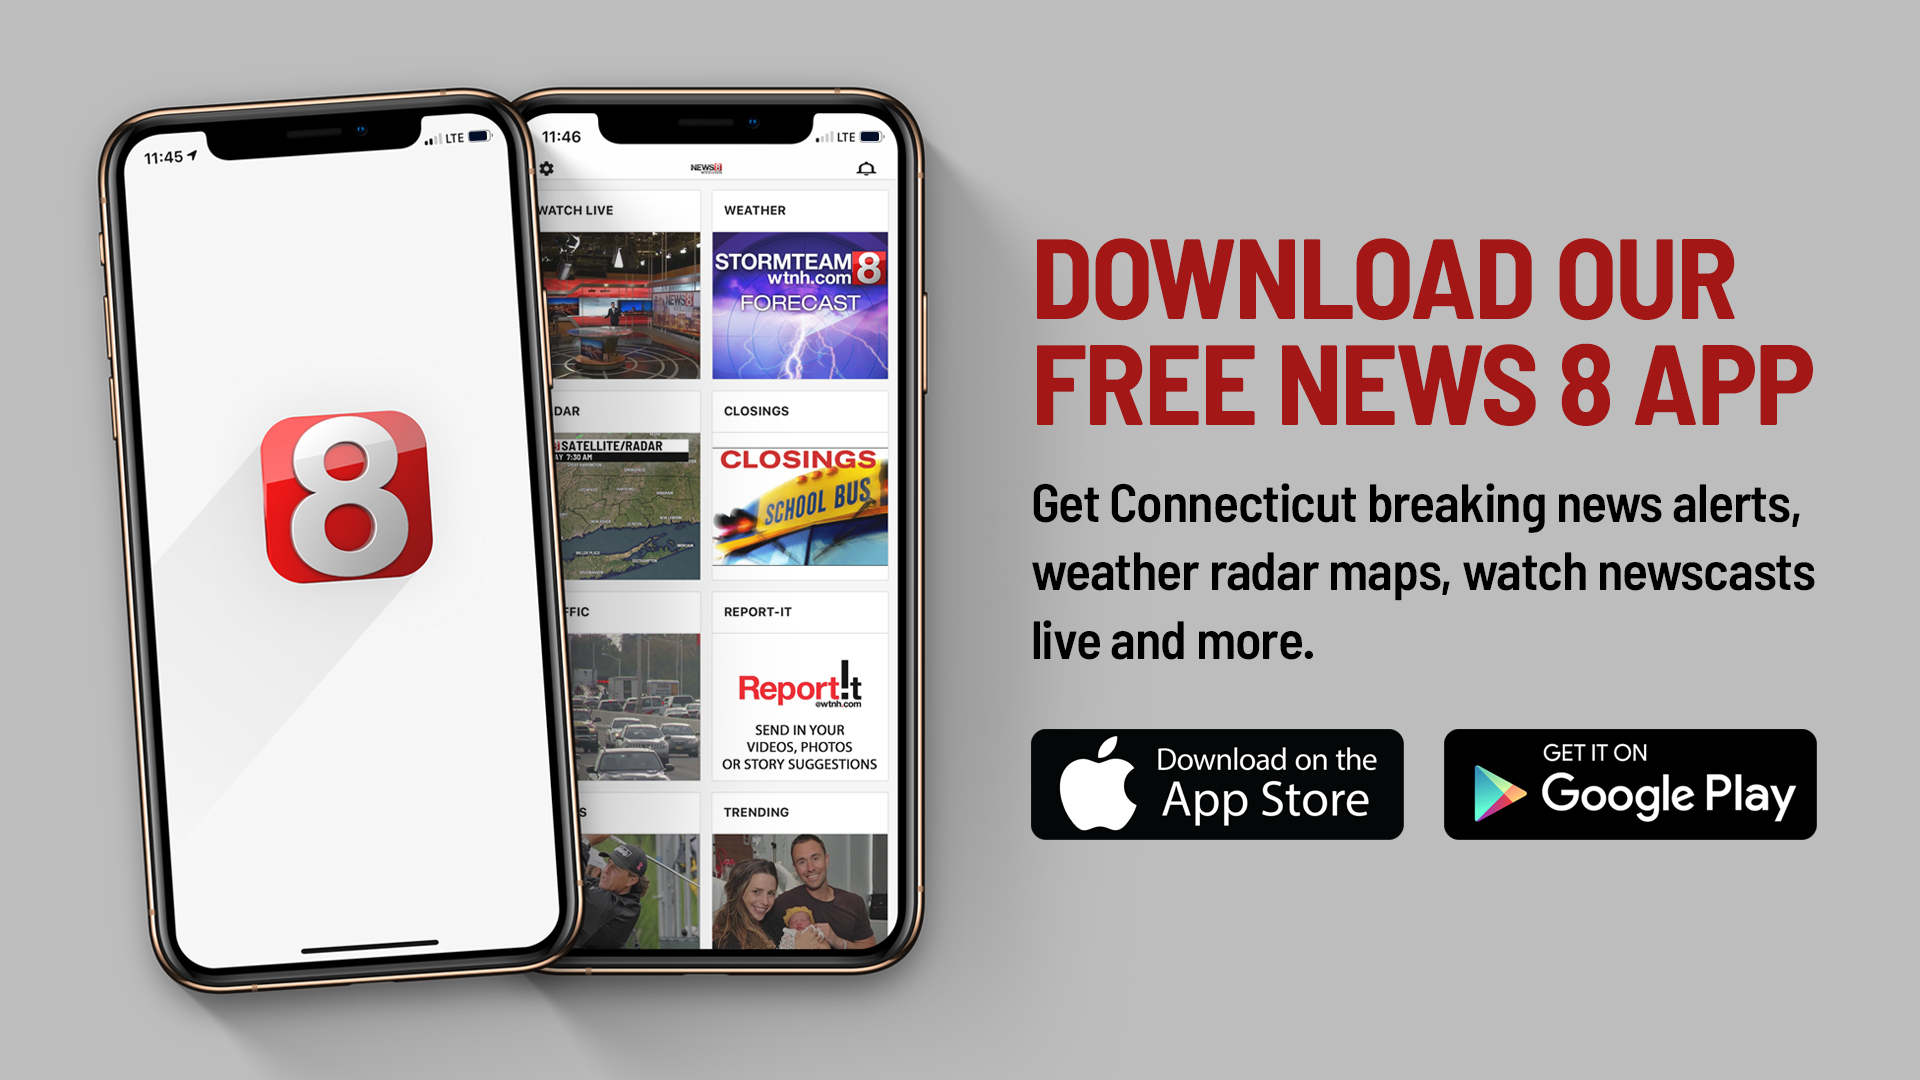 Get the News 8 App Free